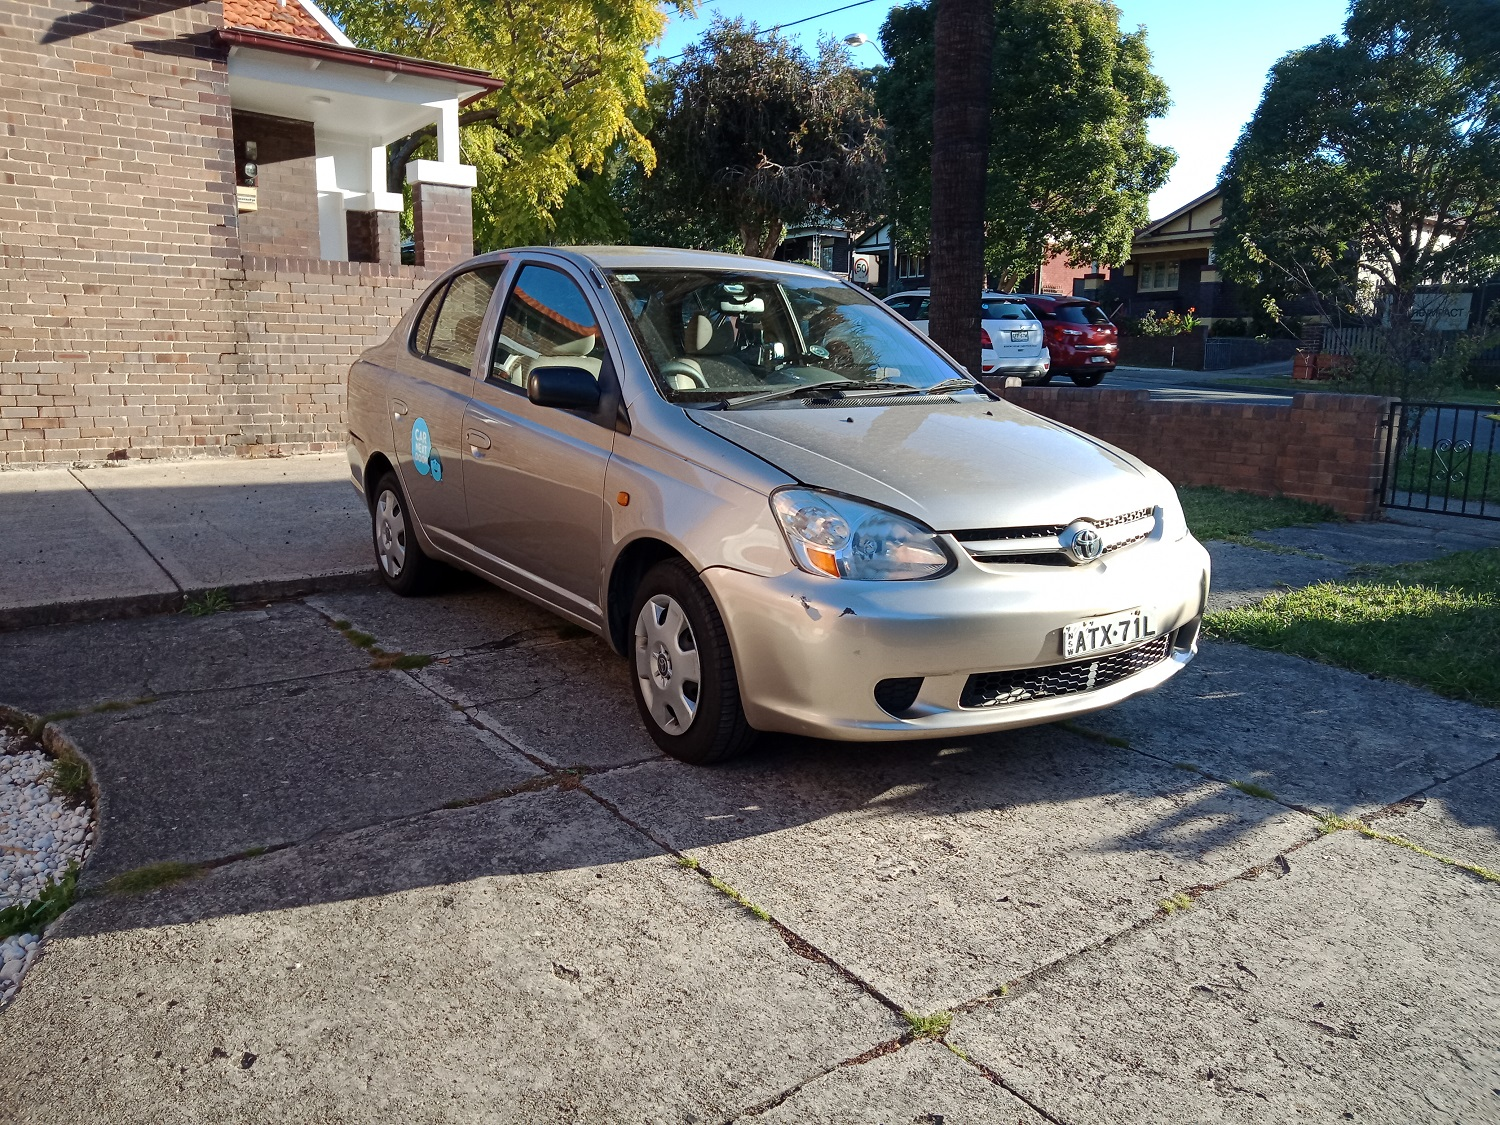 Picture of Rosiane's 2005 Toyota Echo